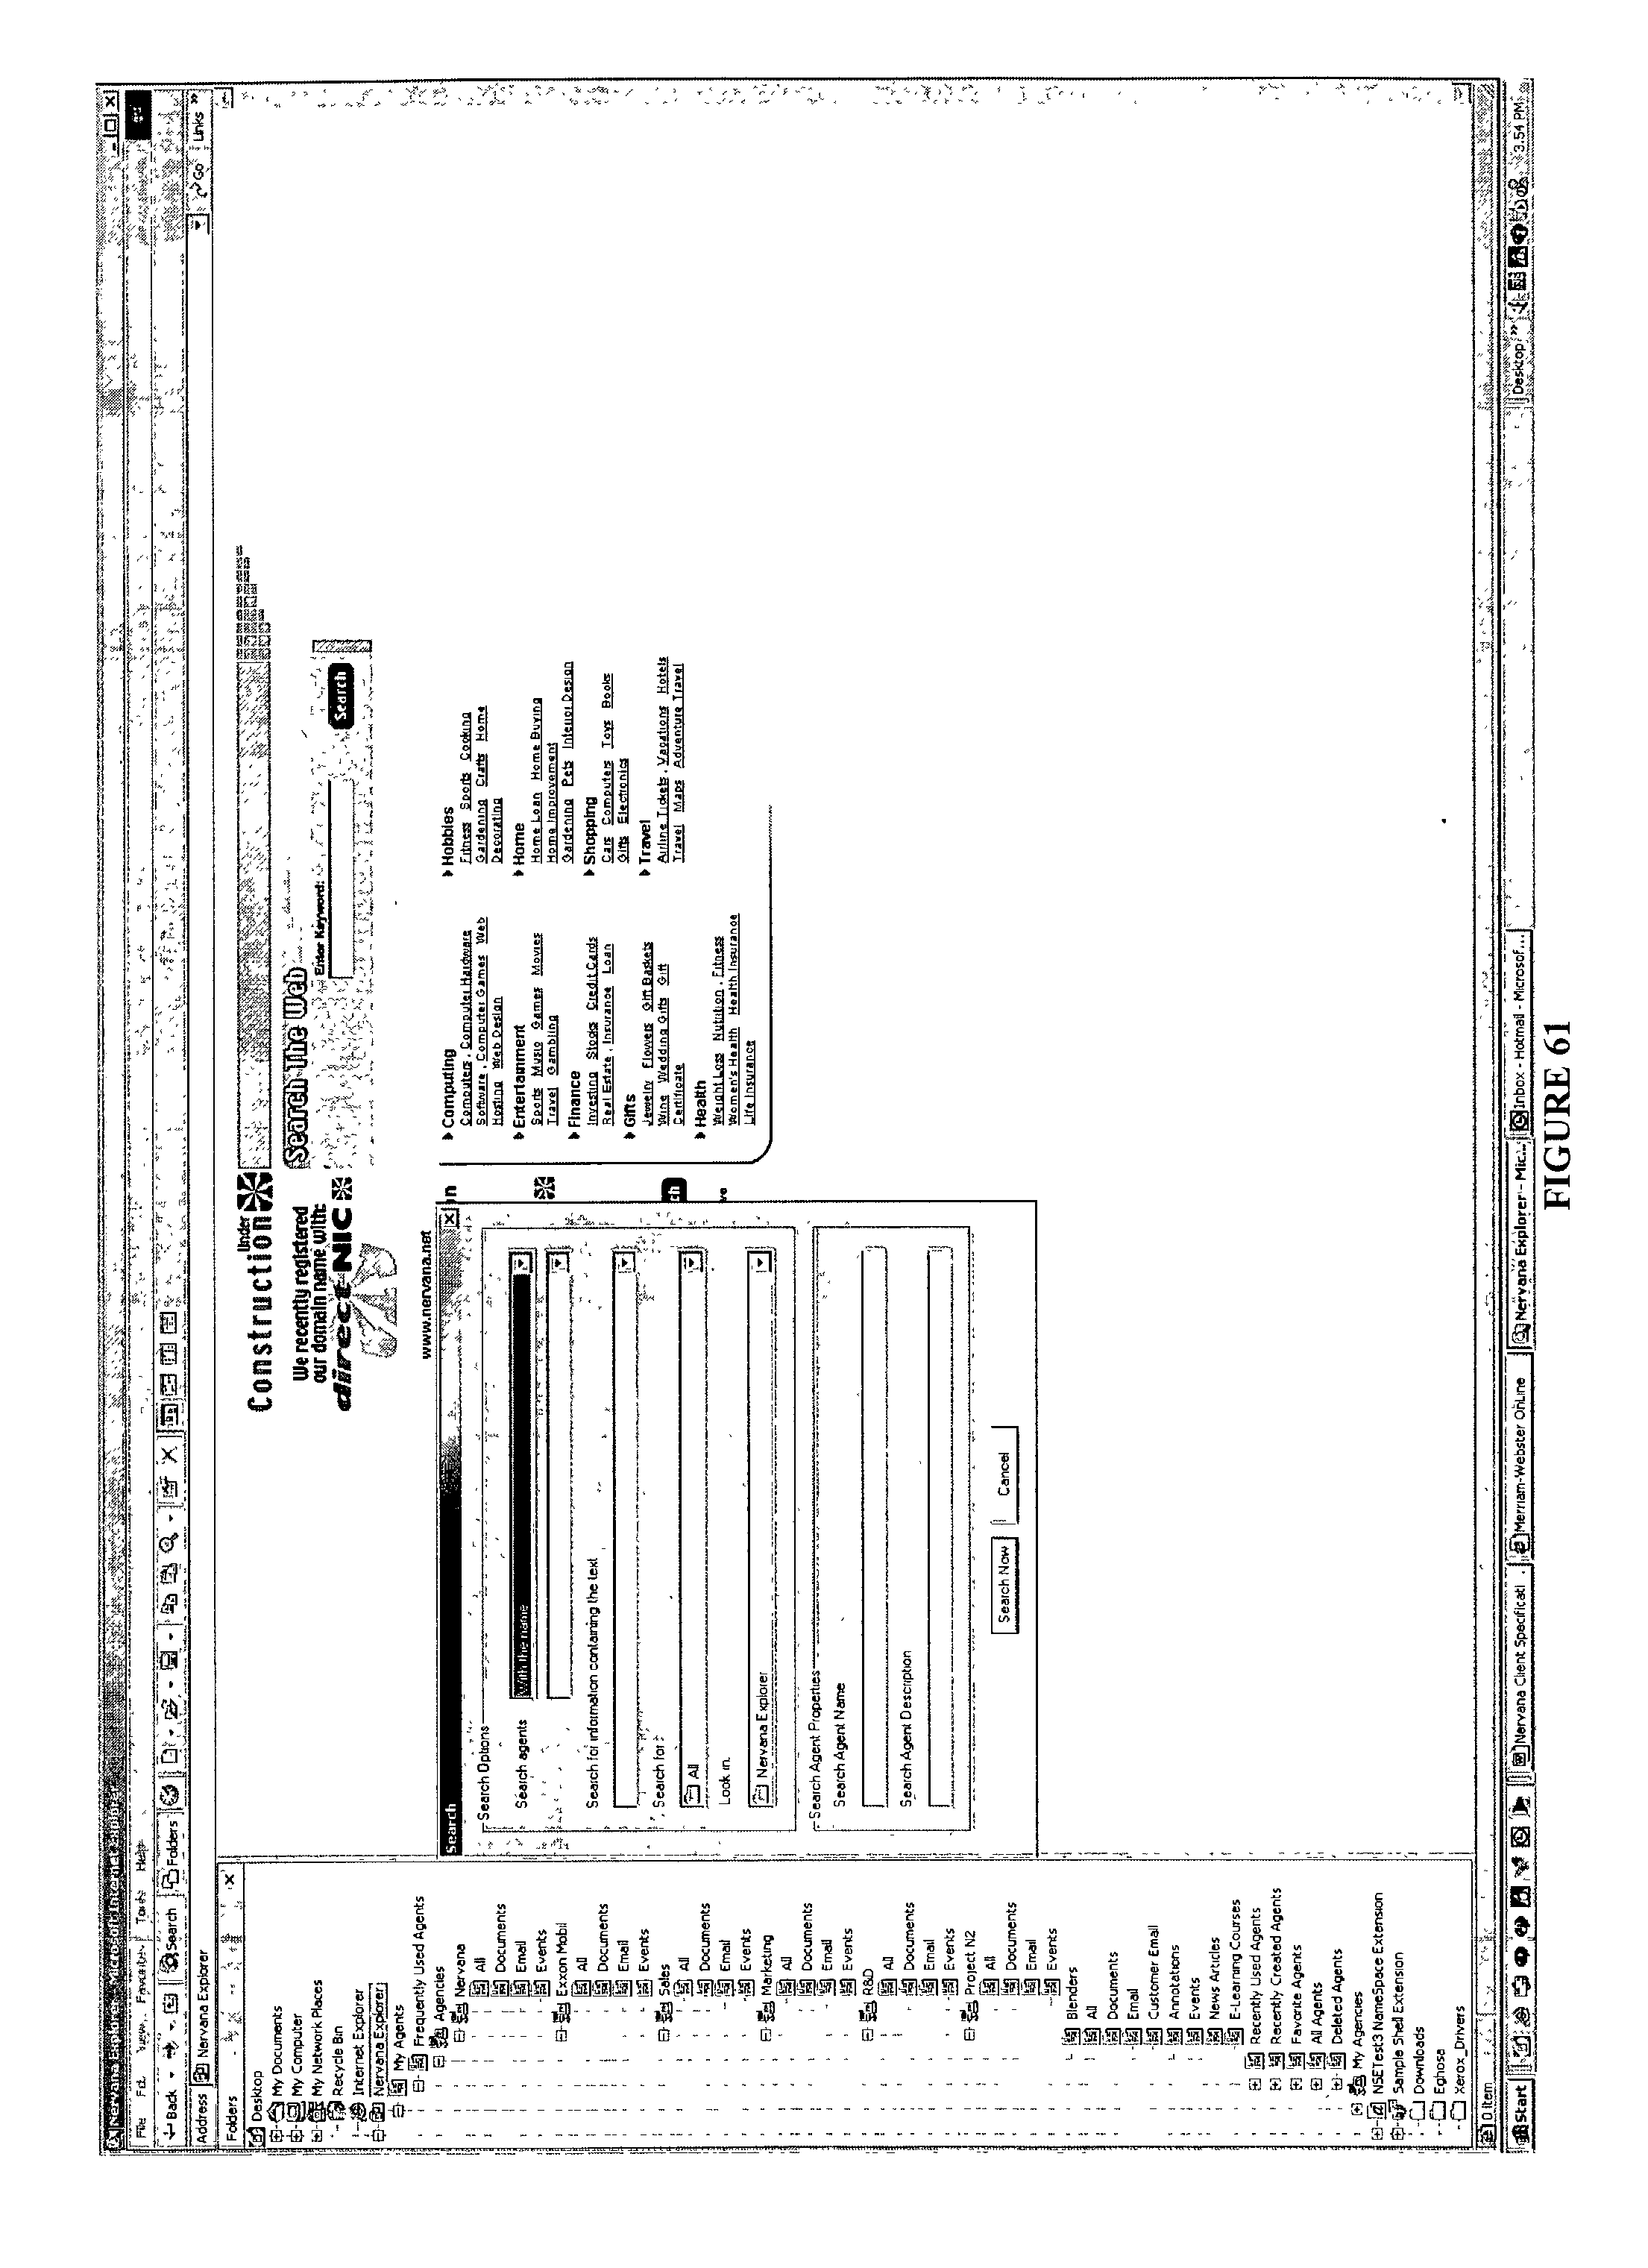 Patent US 20030126136A1 on